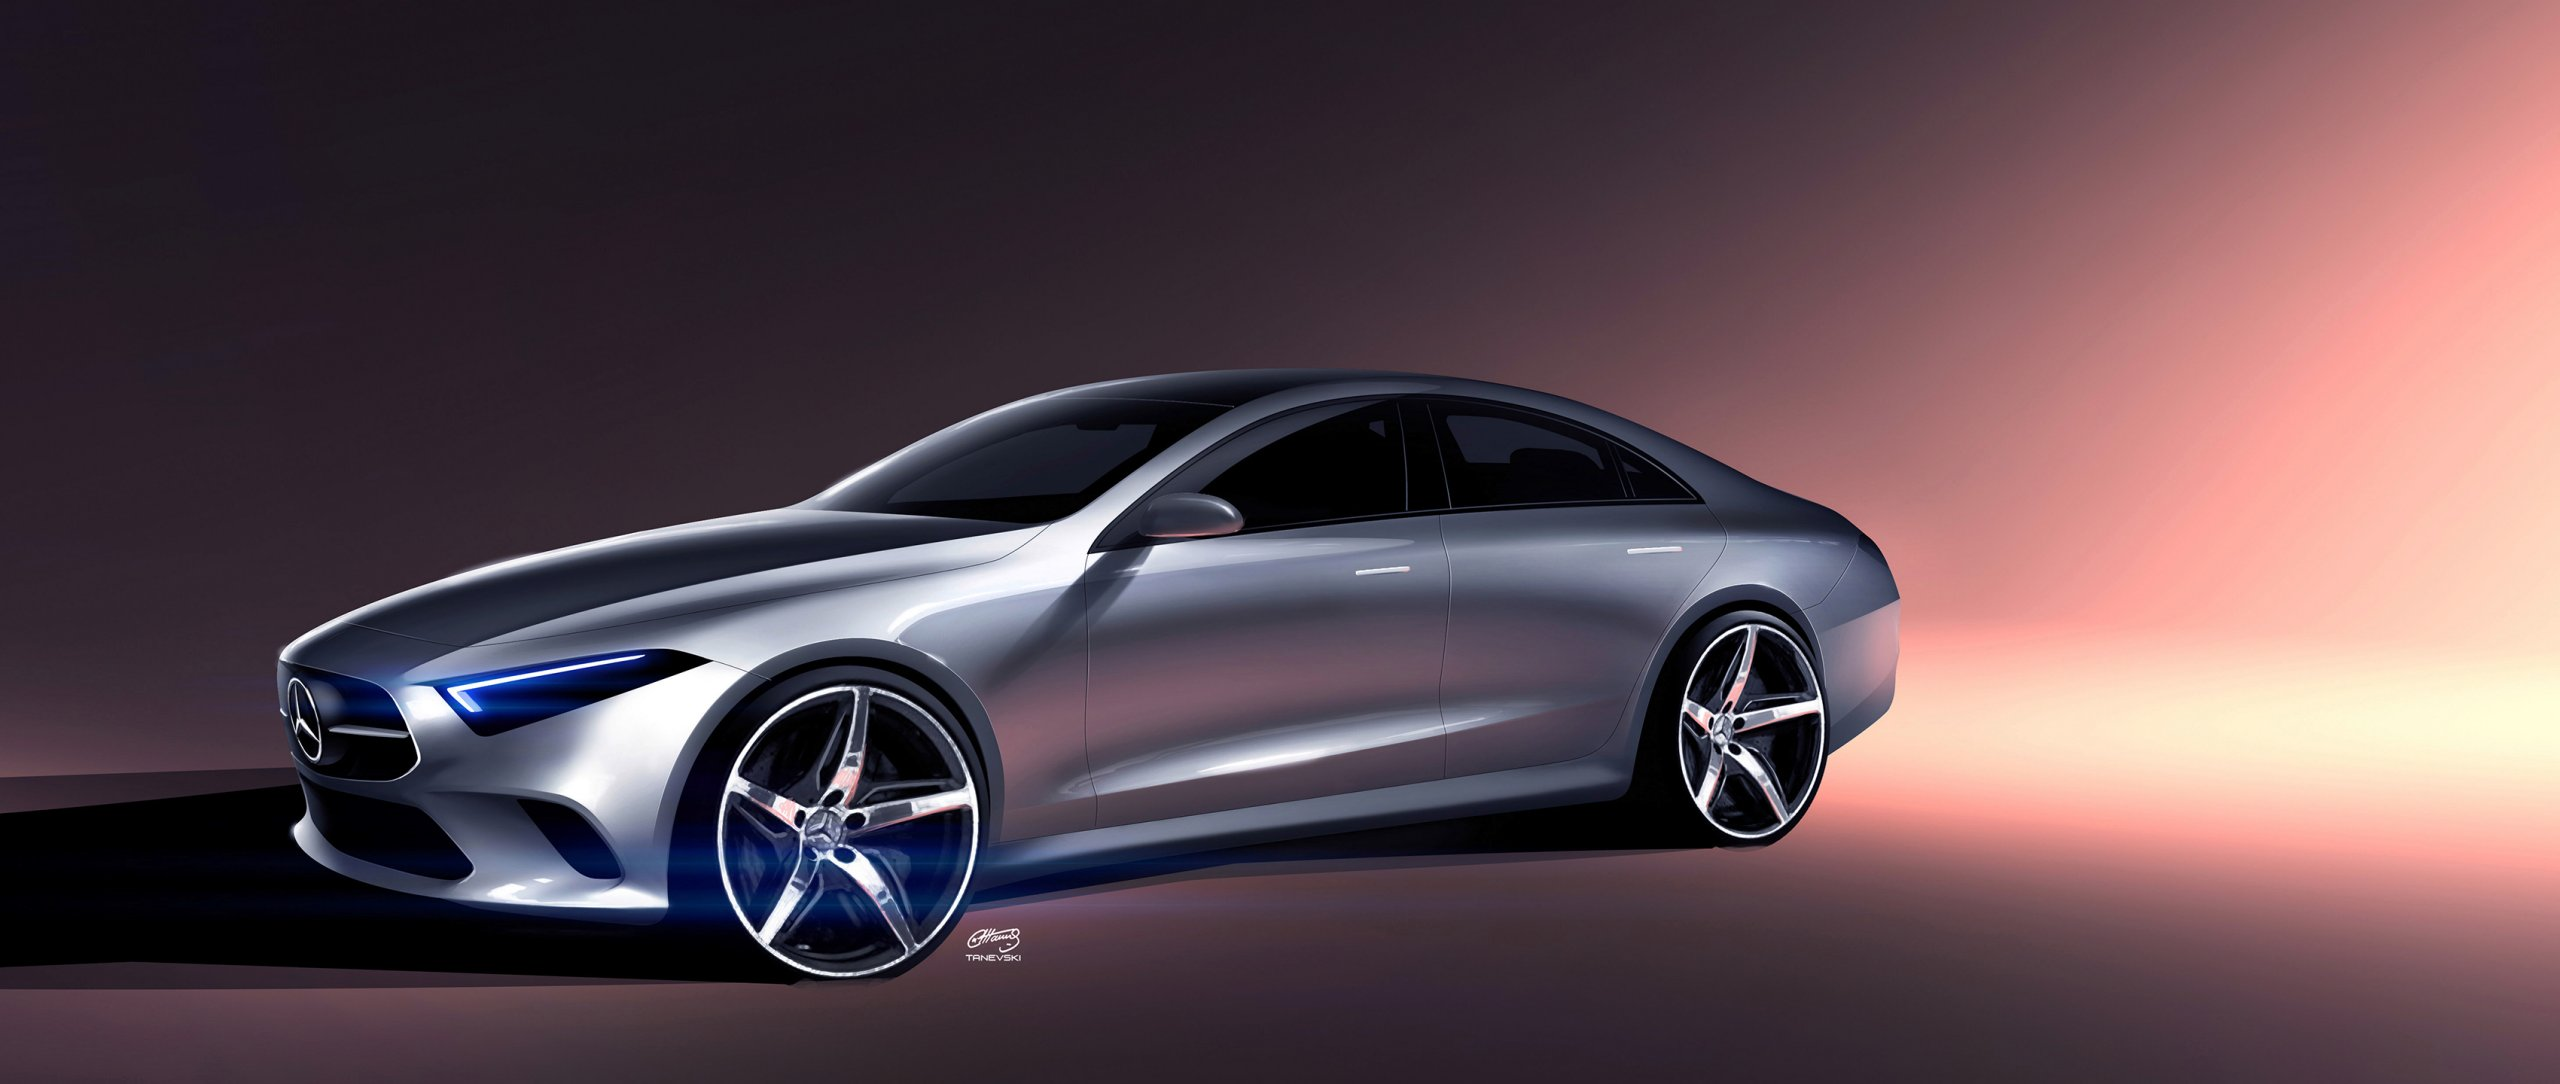 Mercedes-Benz Design Sketch of the Concept CLS